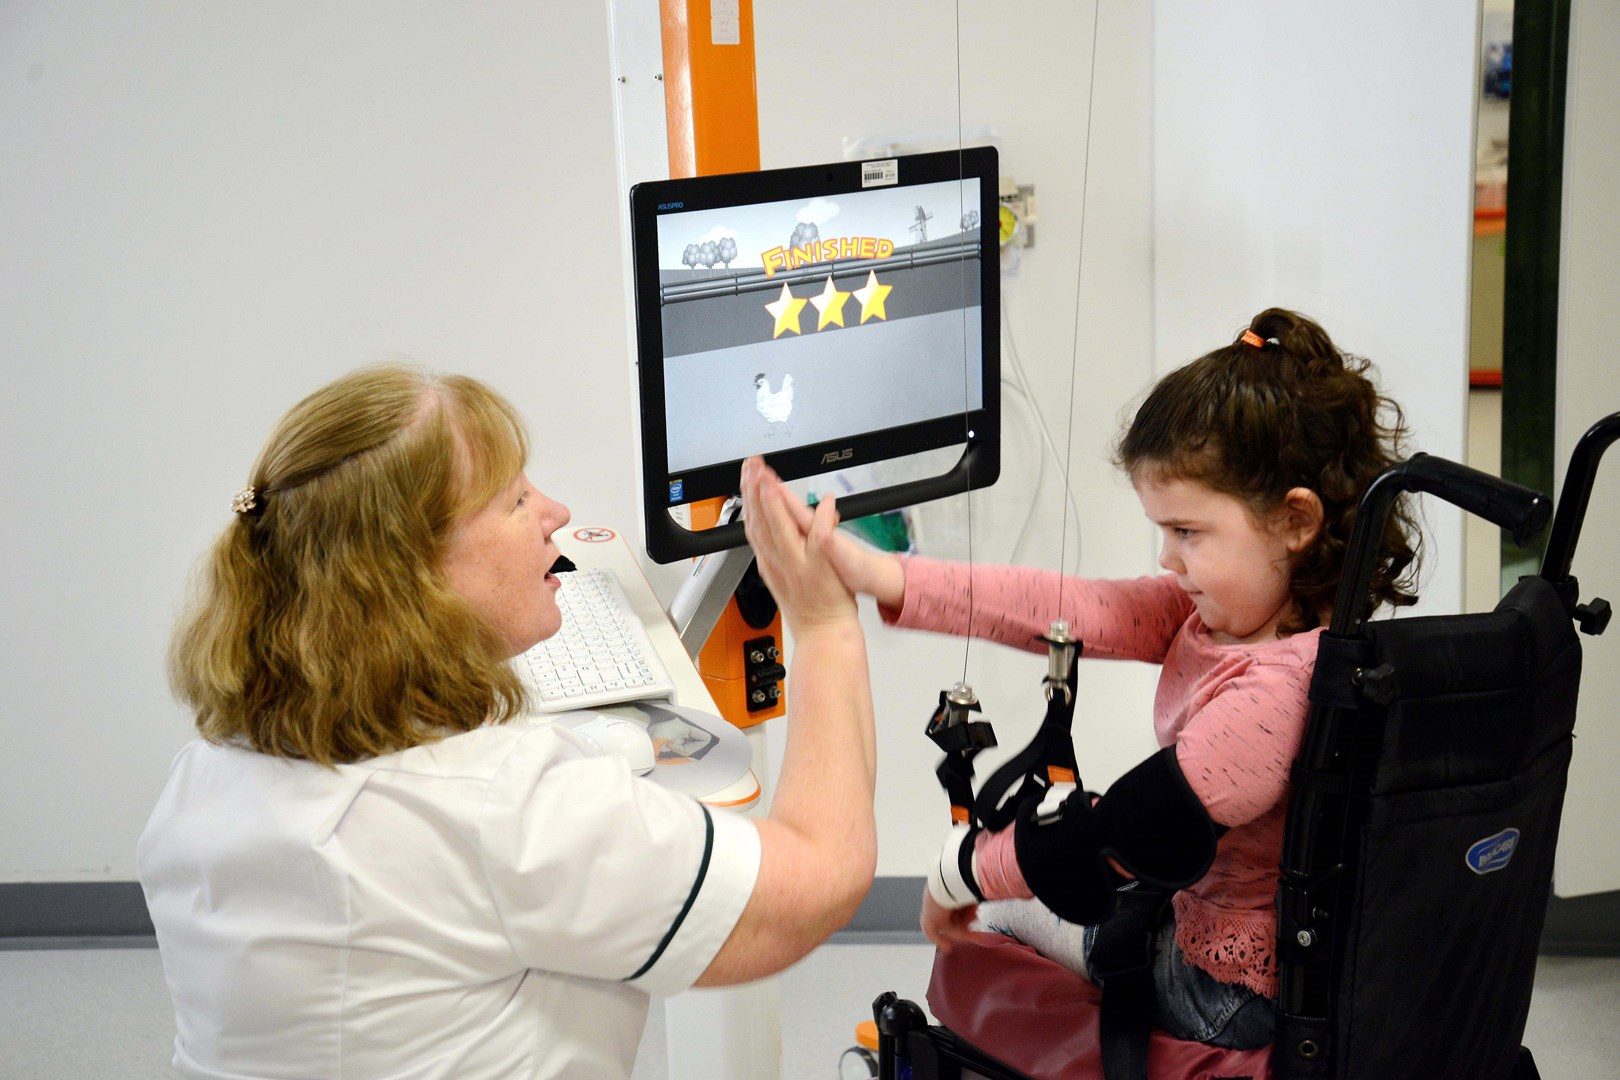 Charitable Funds at Newcastle's Hospitals is fundraising for